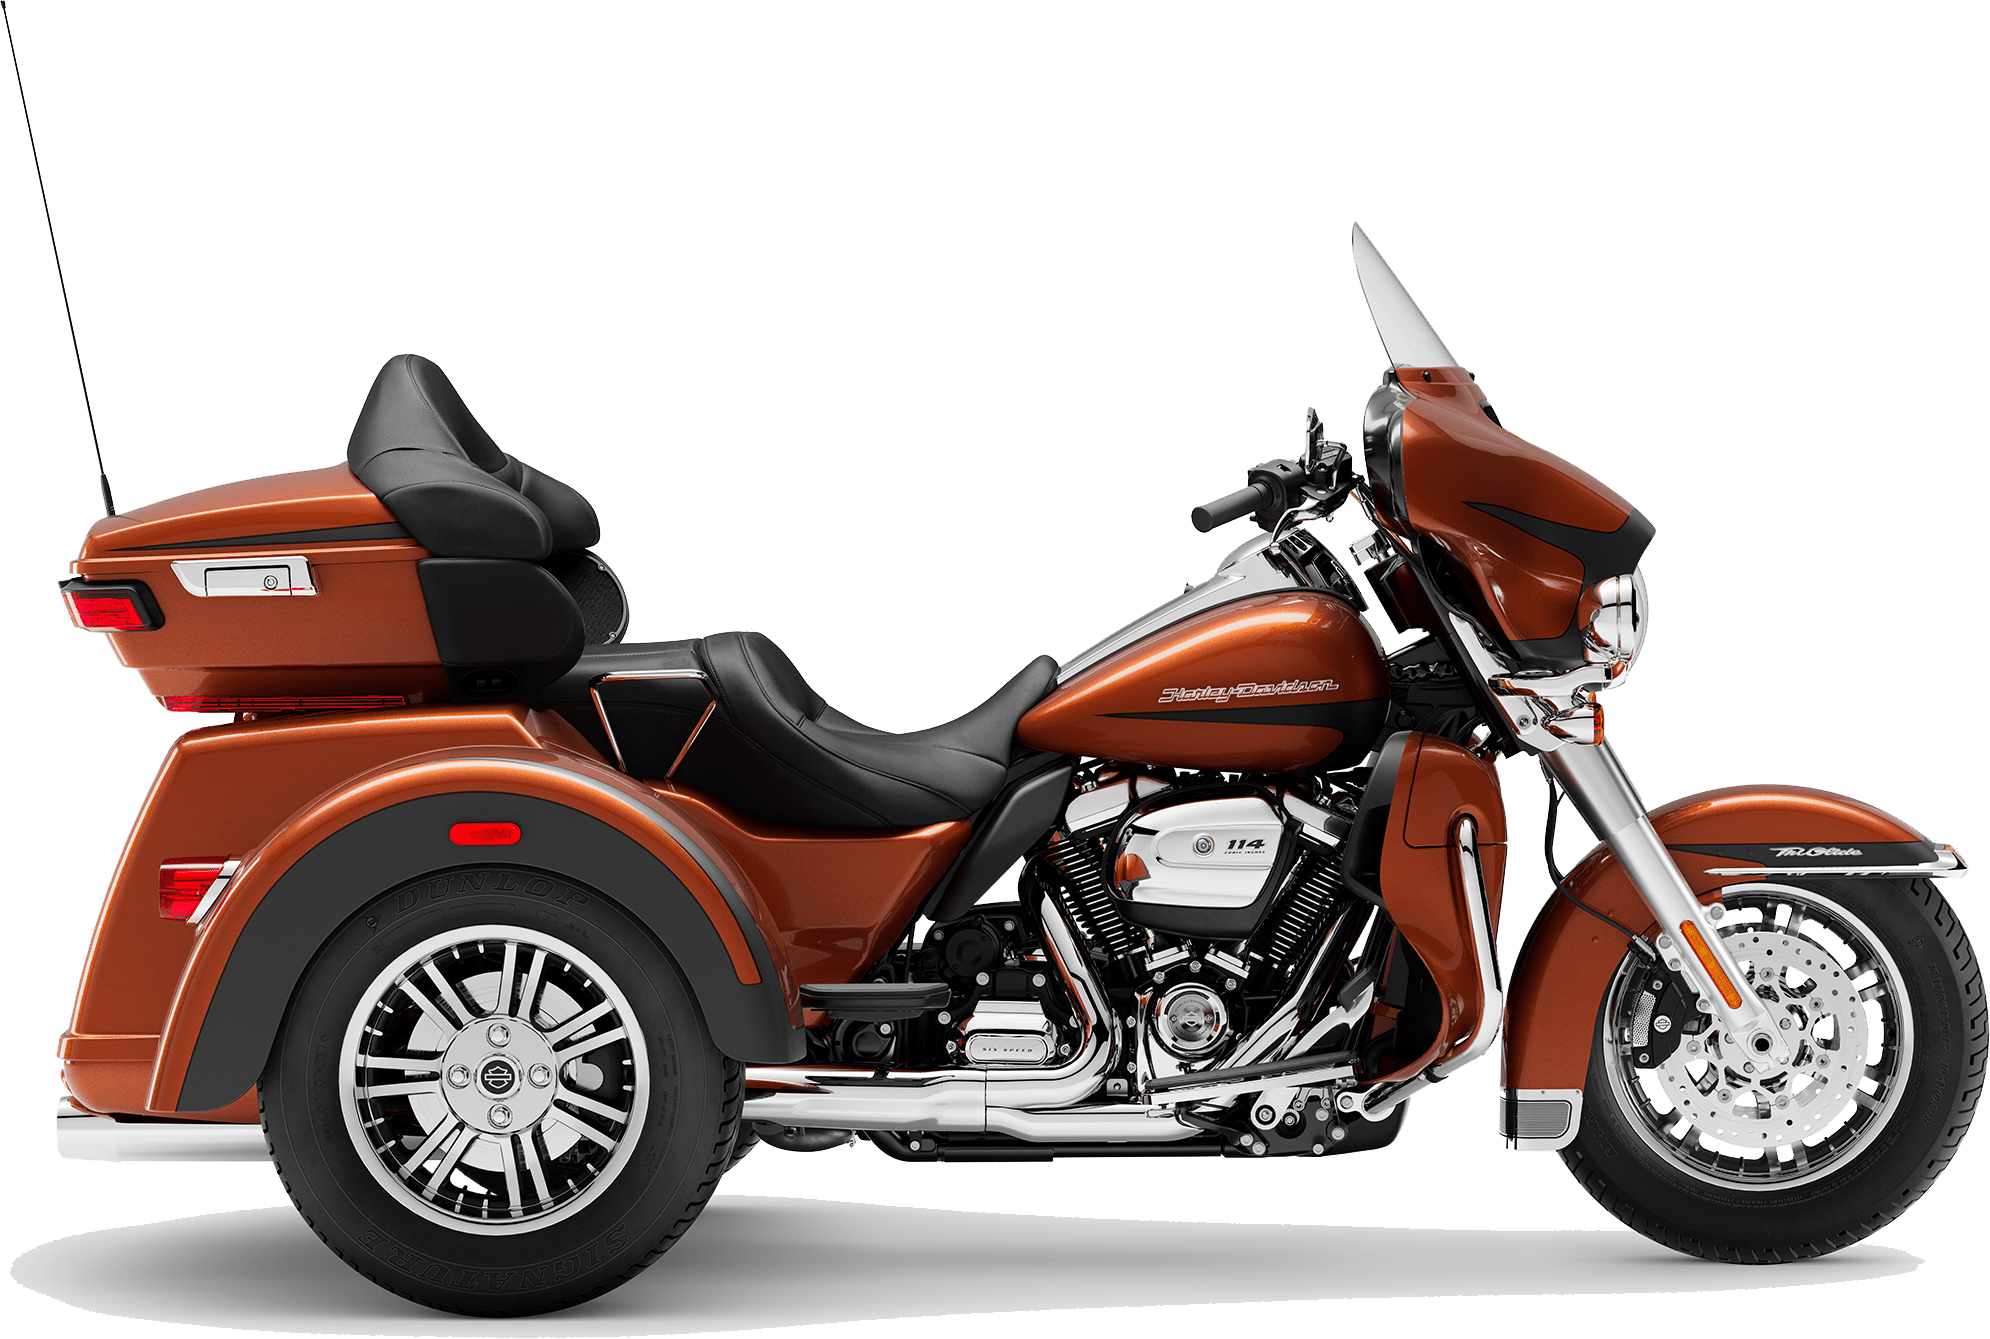 2019 Harley-Davidson Tri-Glide Ultra Scorched Orange Black Denim